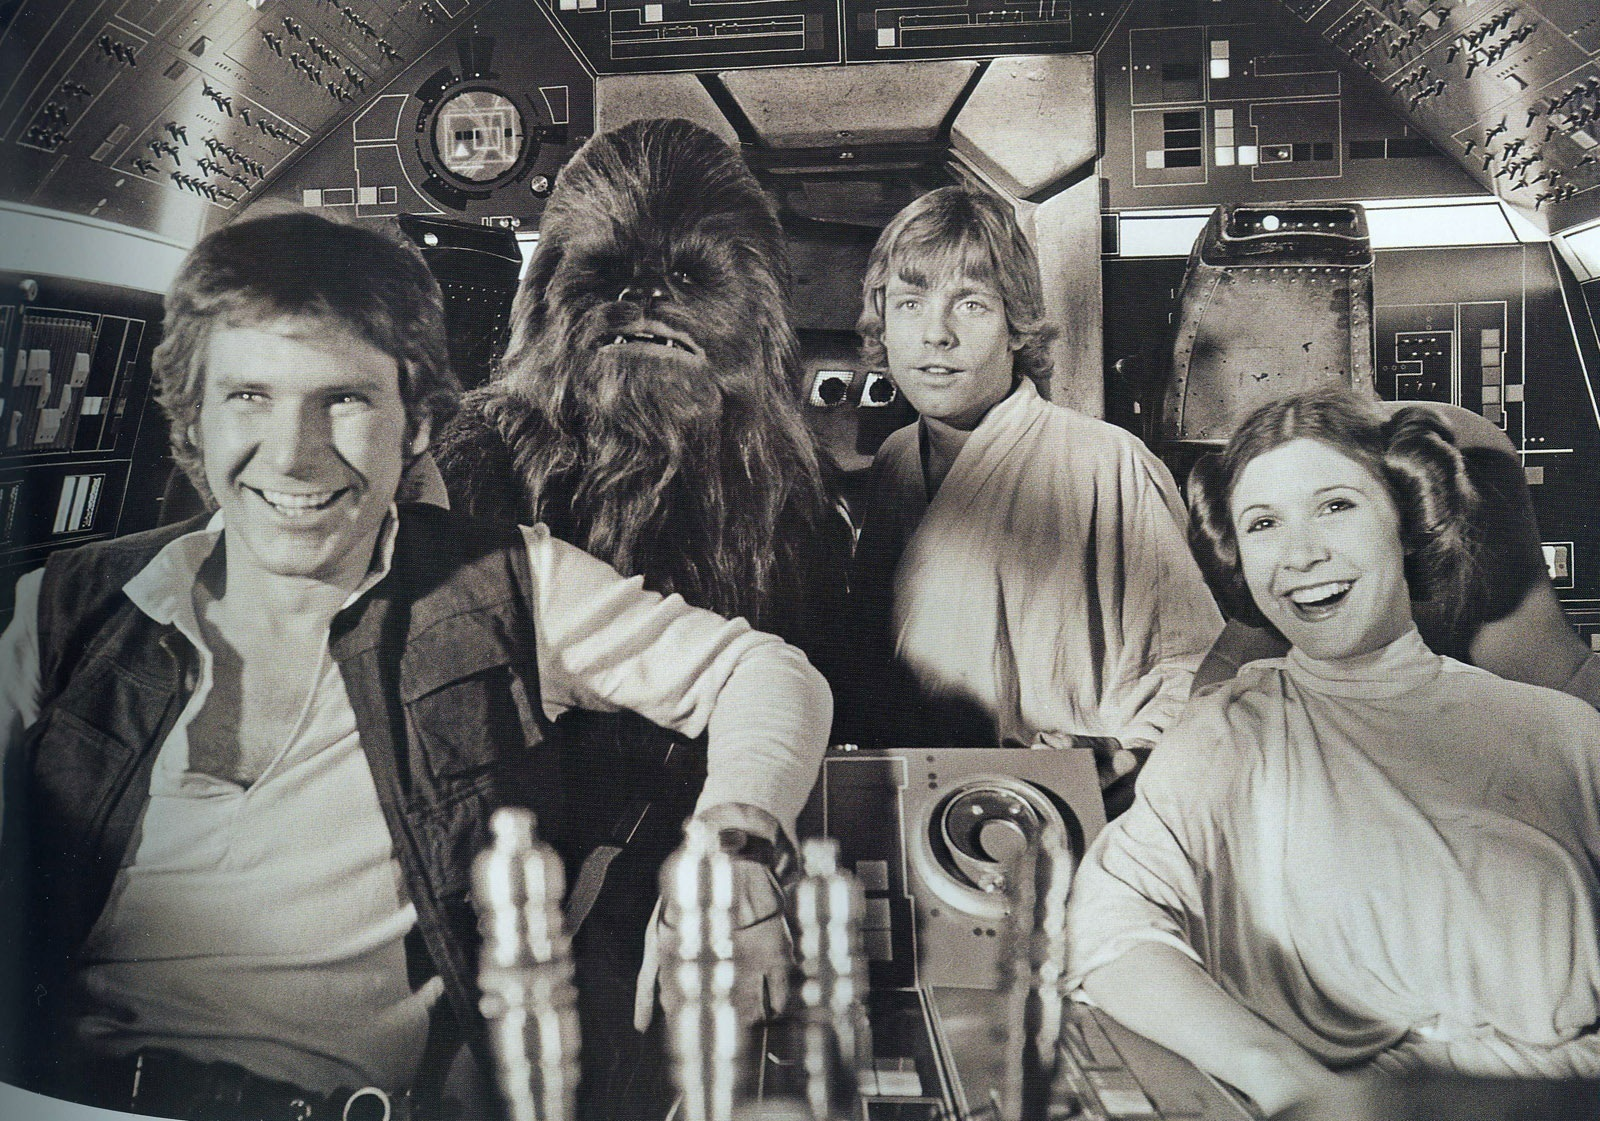 Chewie-Luke-Leia-and-Han-han-luke-and-leia-24048896-1600-1121